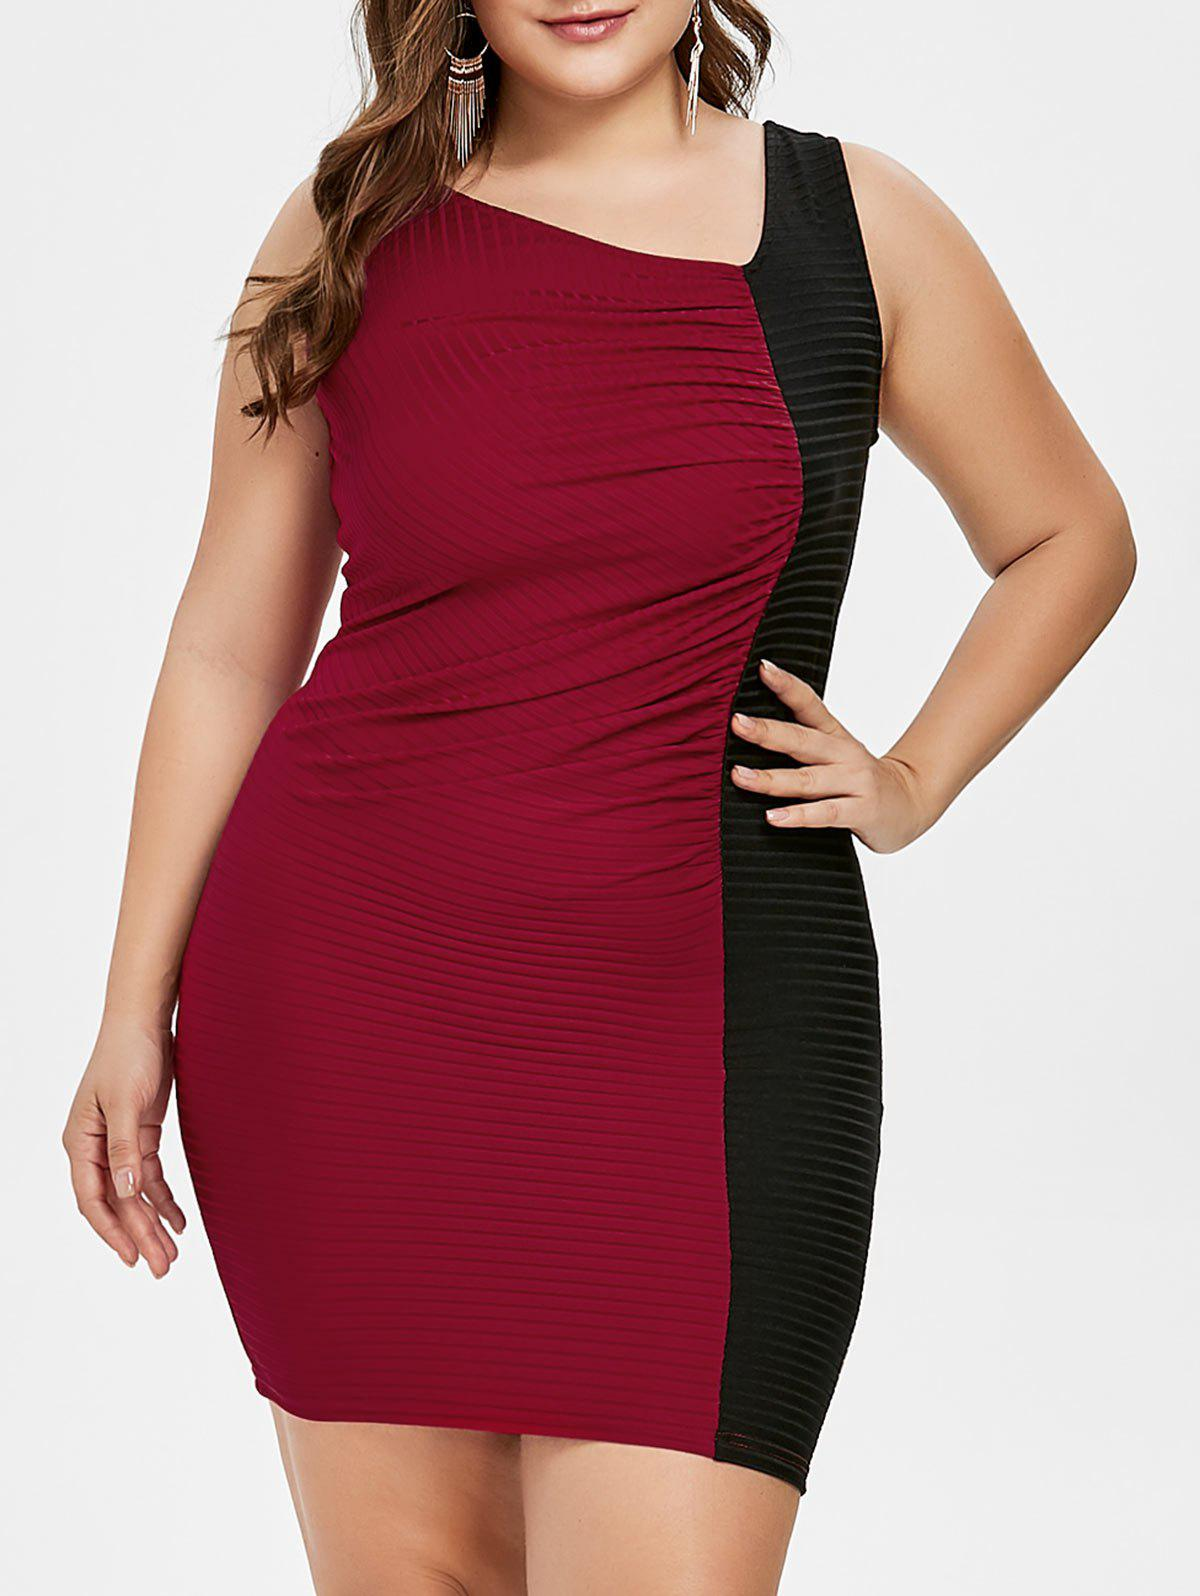 Plus Size Color Block Skew Collar Tight Dress - RED WINE 3X